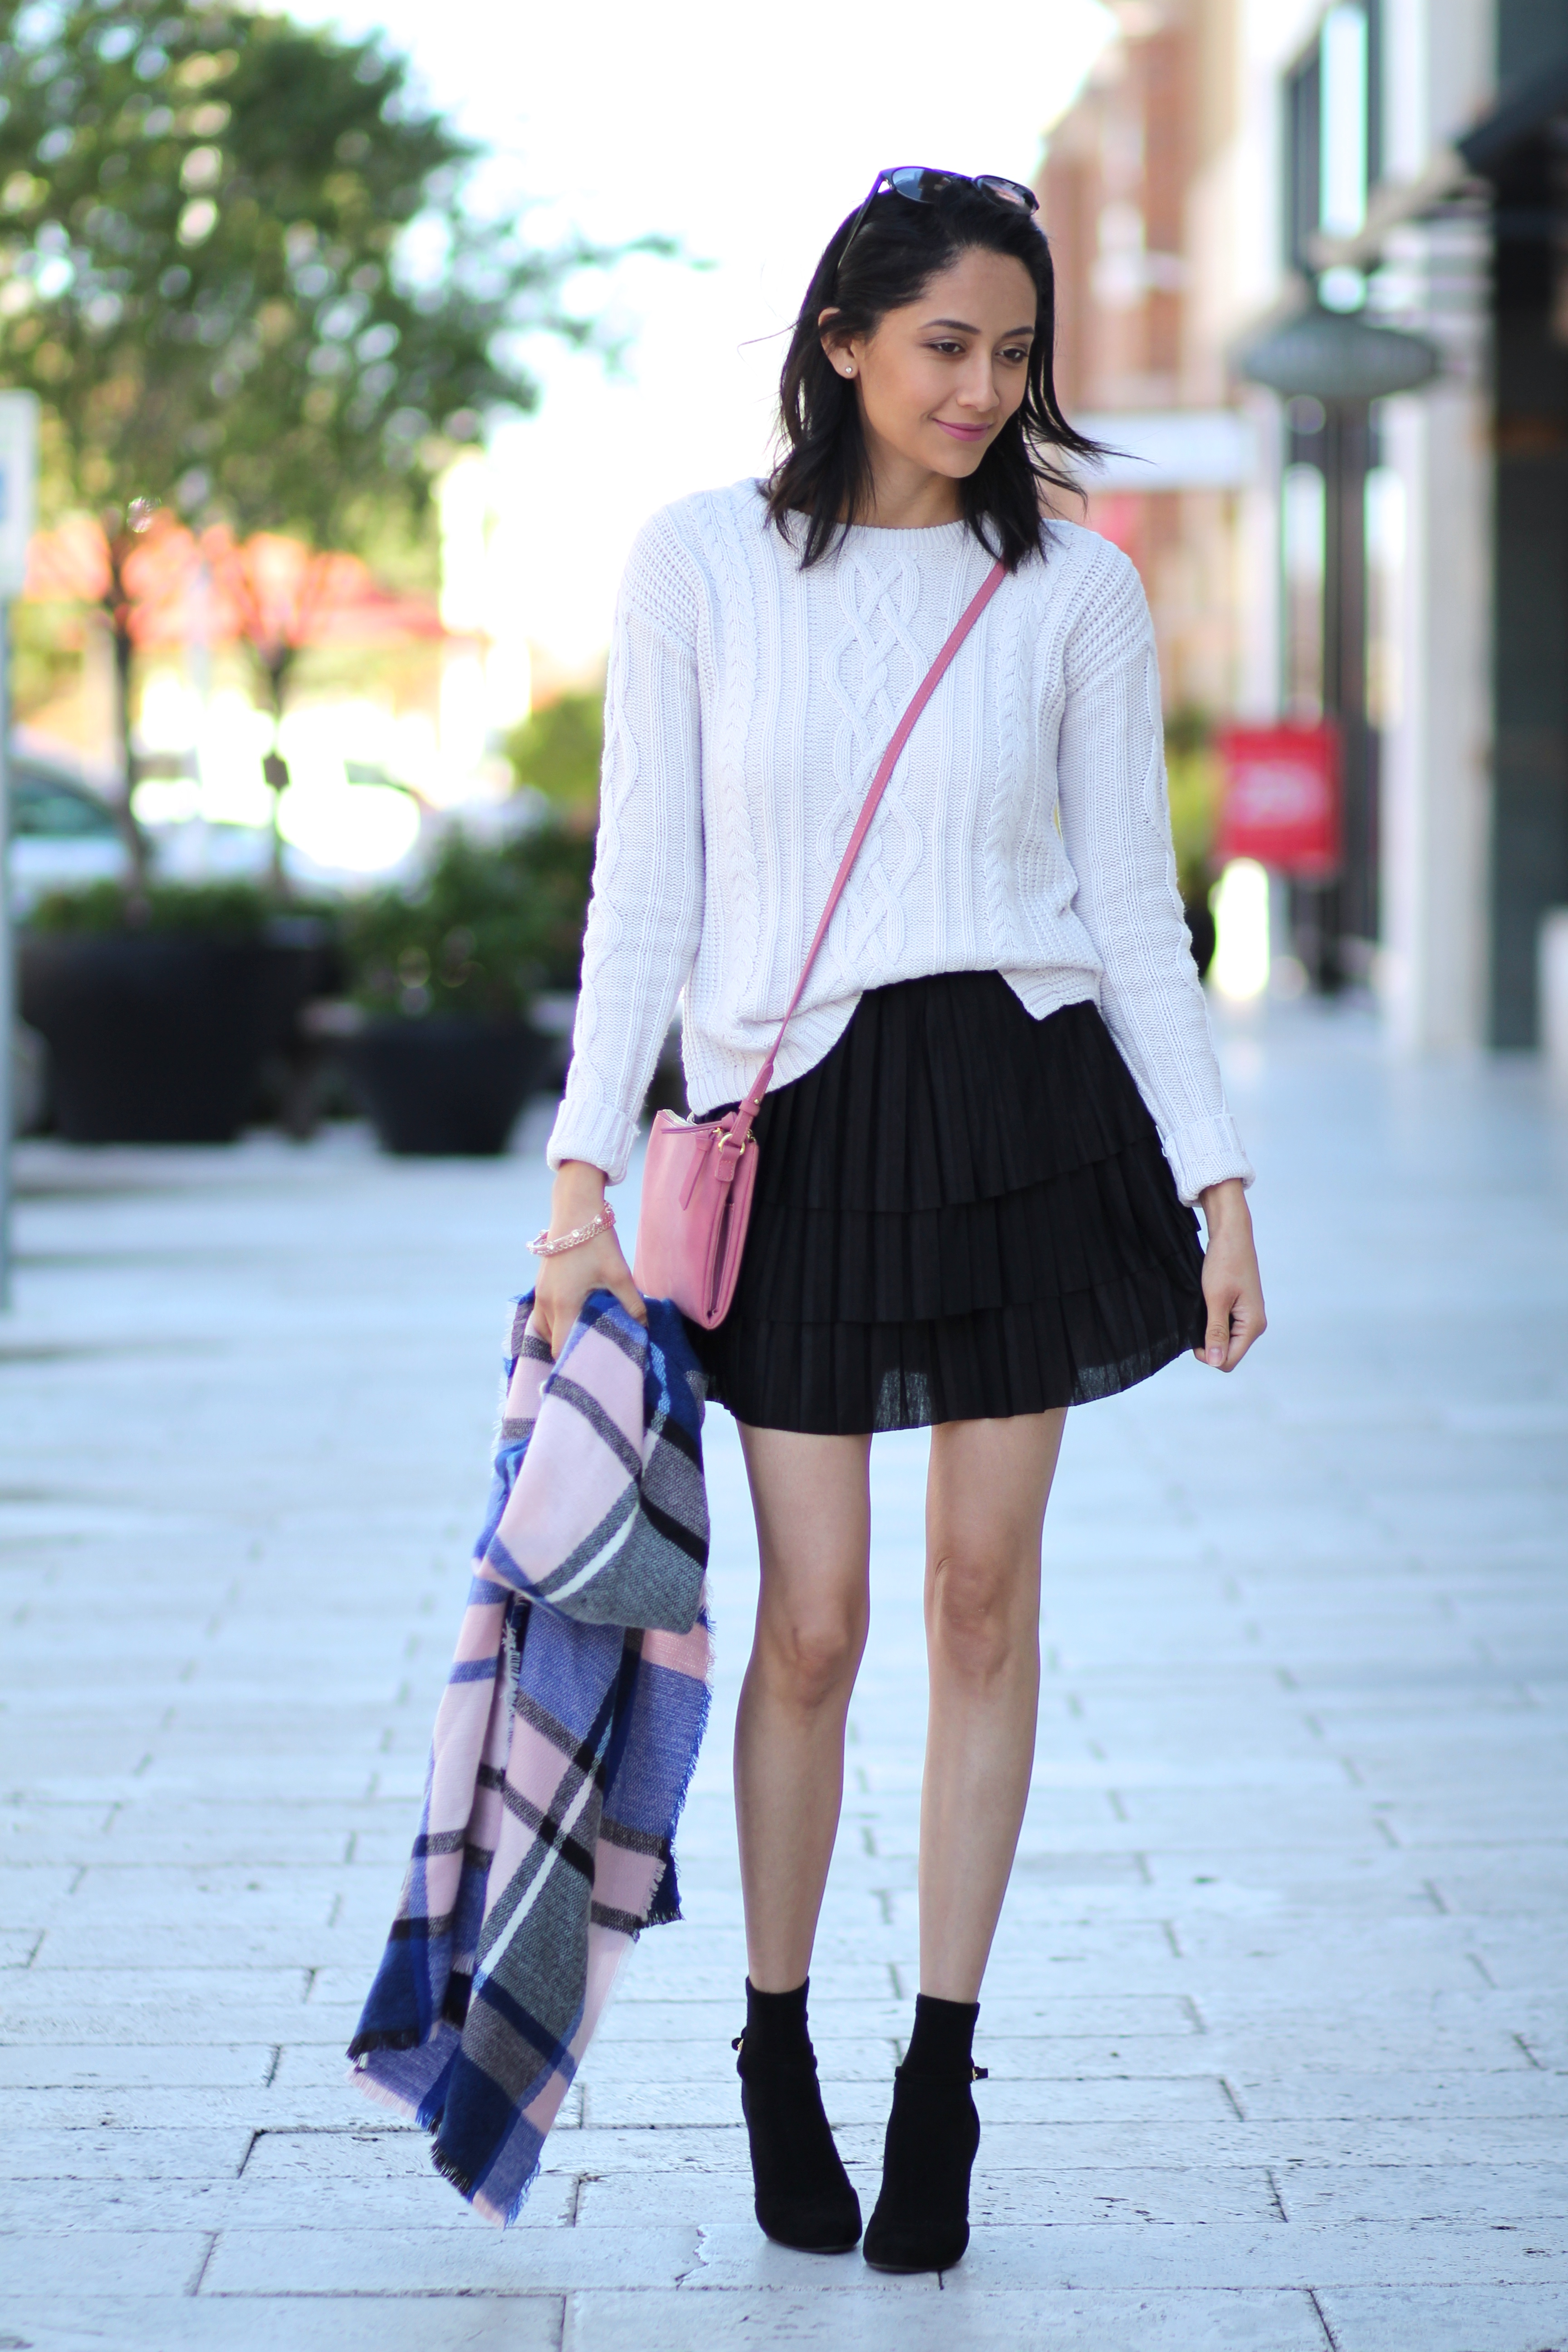 A Cute, Chic & Casual Holiday Outfit